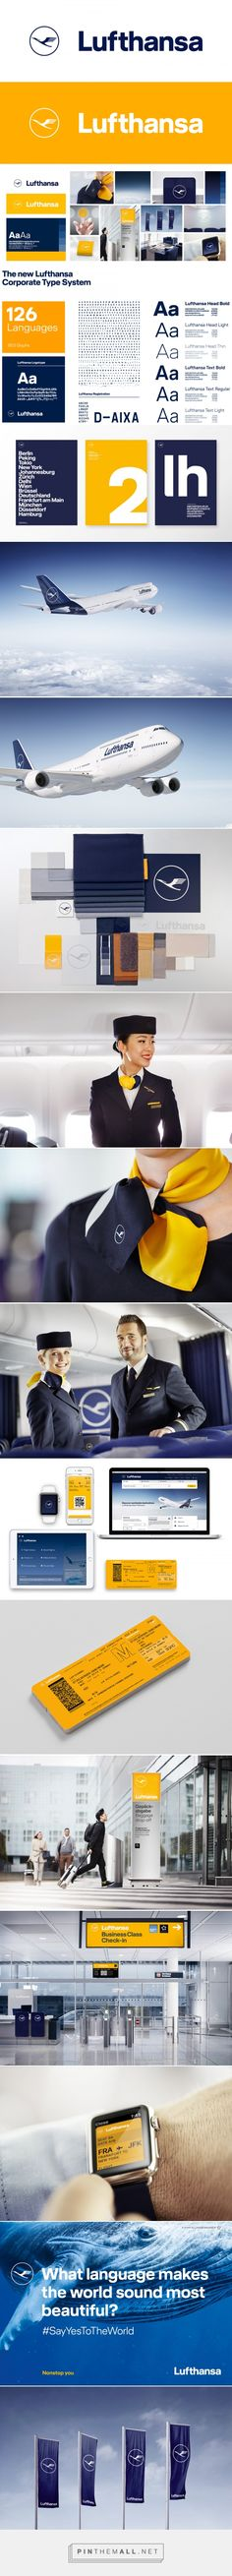 Brand New: New Logo, Identity, and Livery for Lufthansa done In-house in Collaboration with Martin et Karczinski... - a grouped images picture - Pin Them All